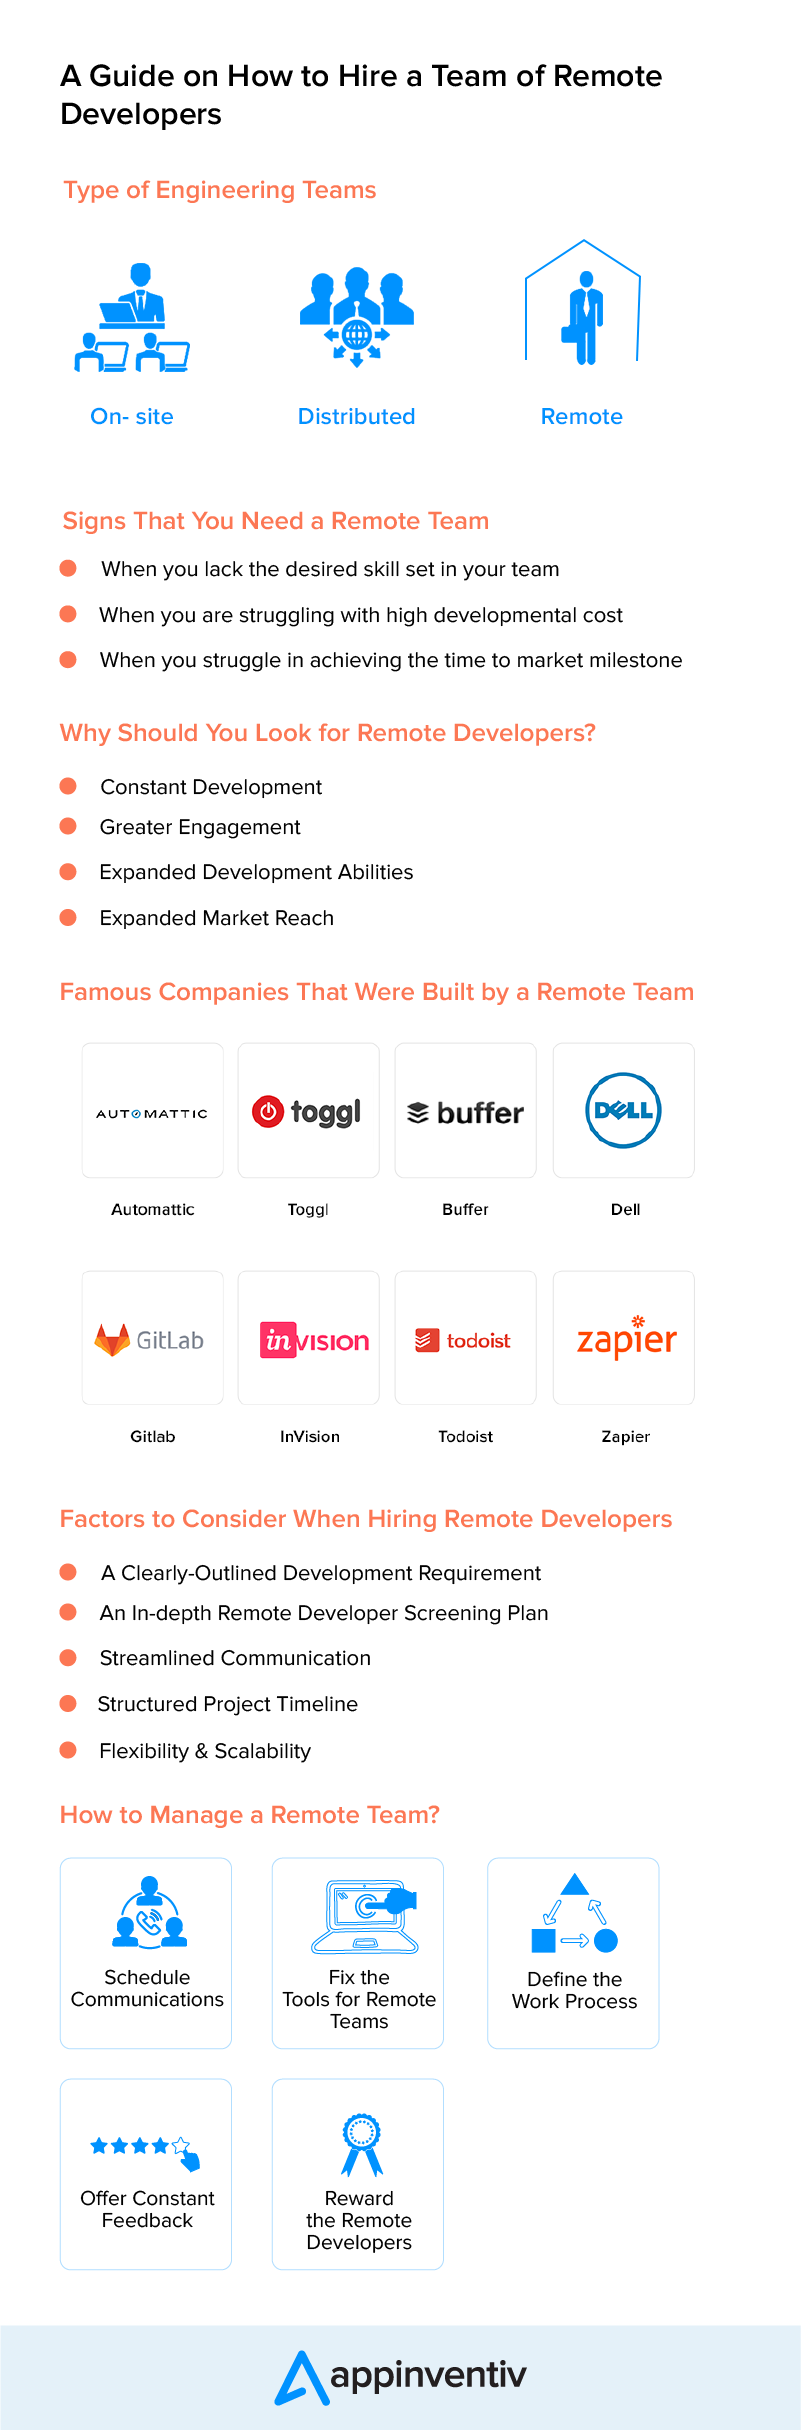 summary of how to hire & manage team of remote developers